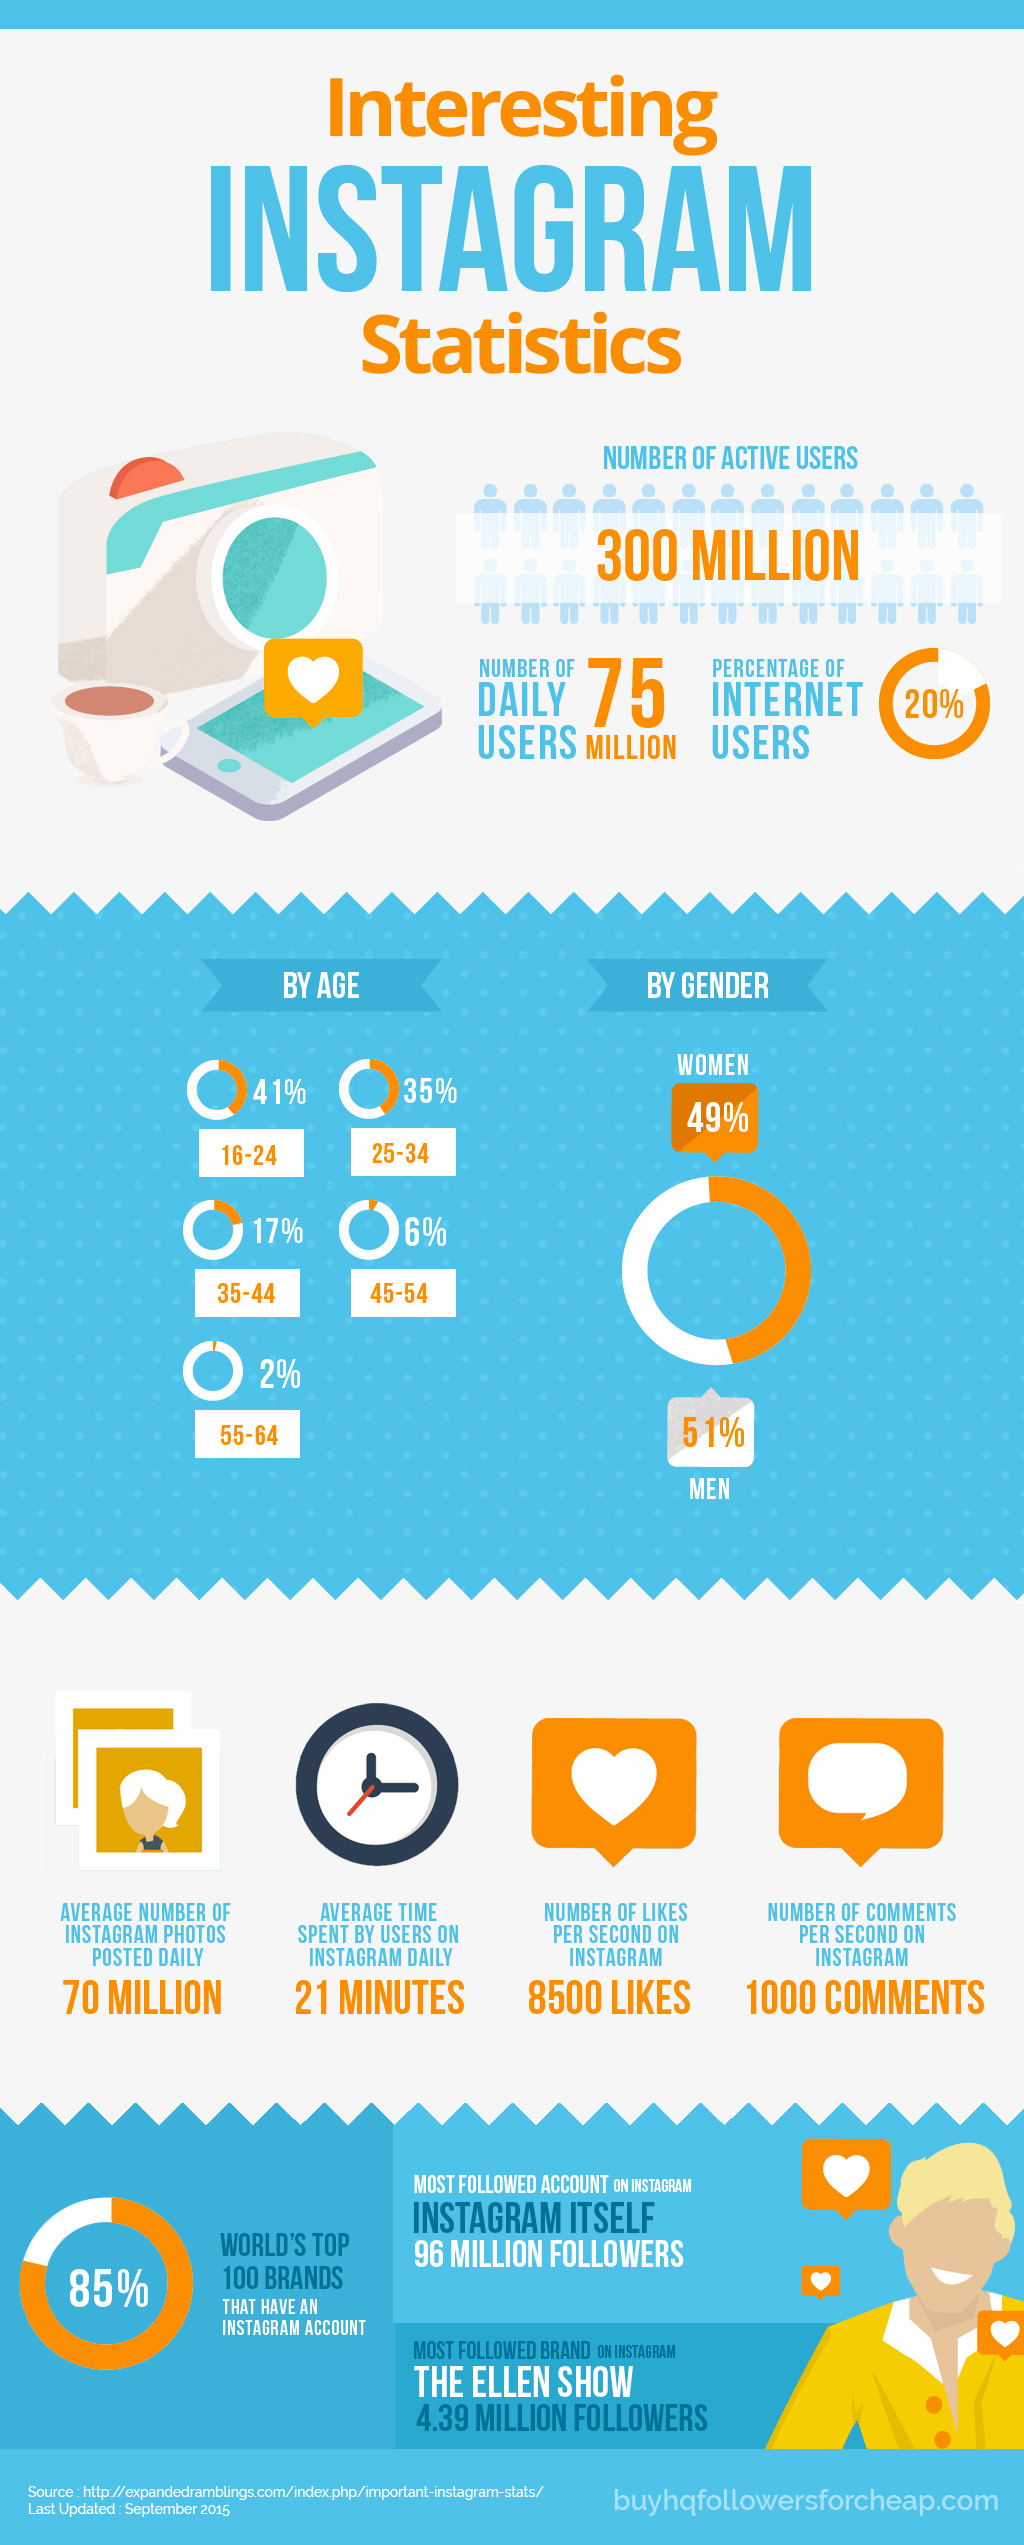 Interesting Instagram Statistics infographic